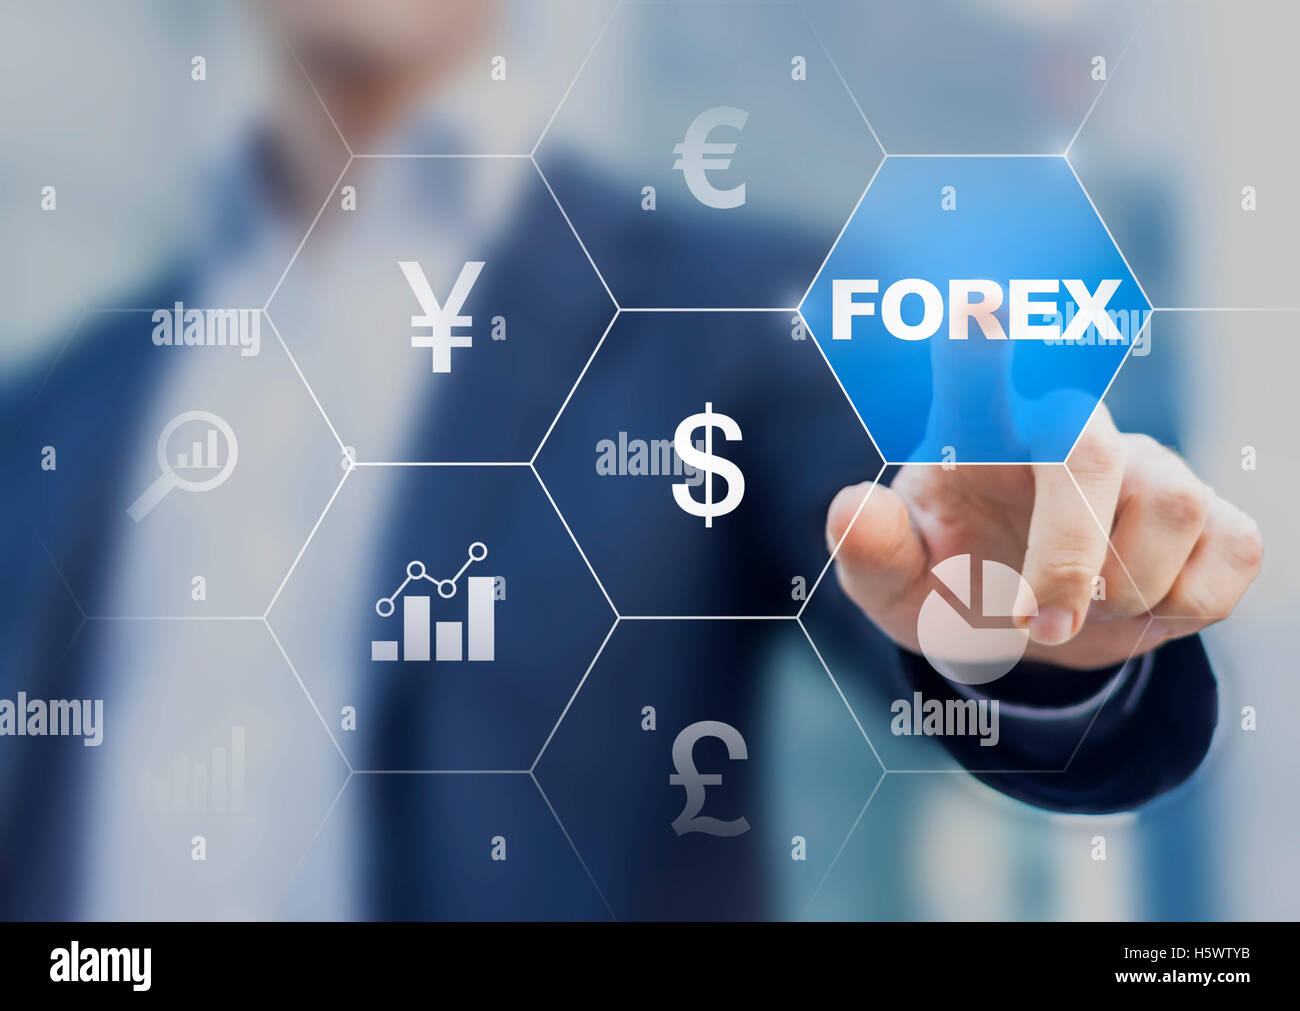 Digital forex